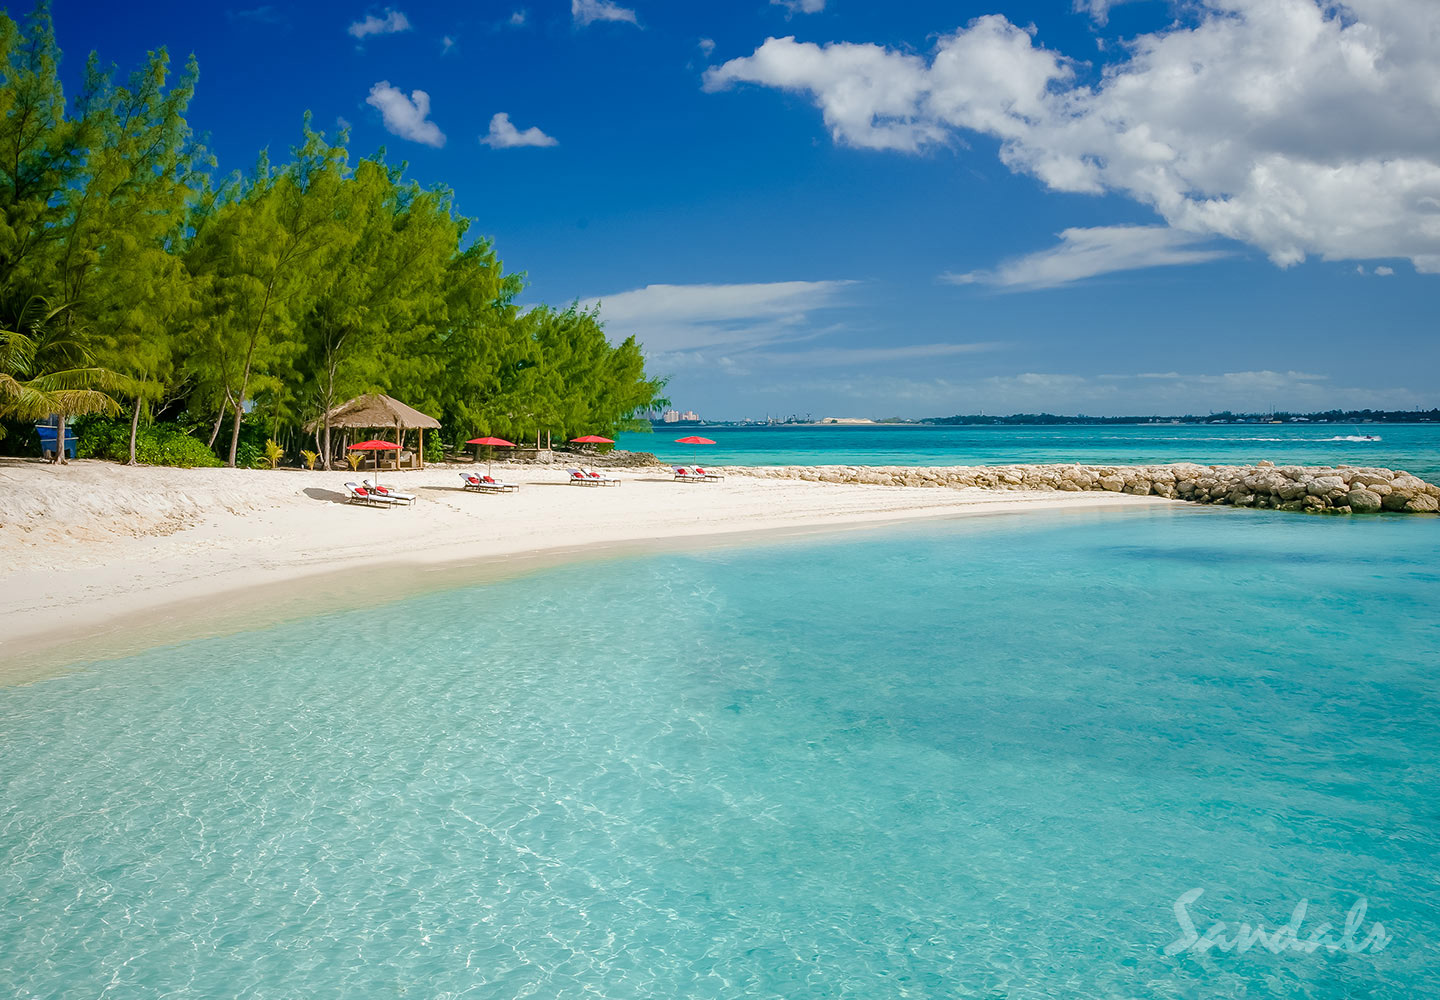 Travel Agency All-Inclusive Resort Sandals Royal Bahamian 013